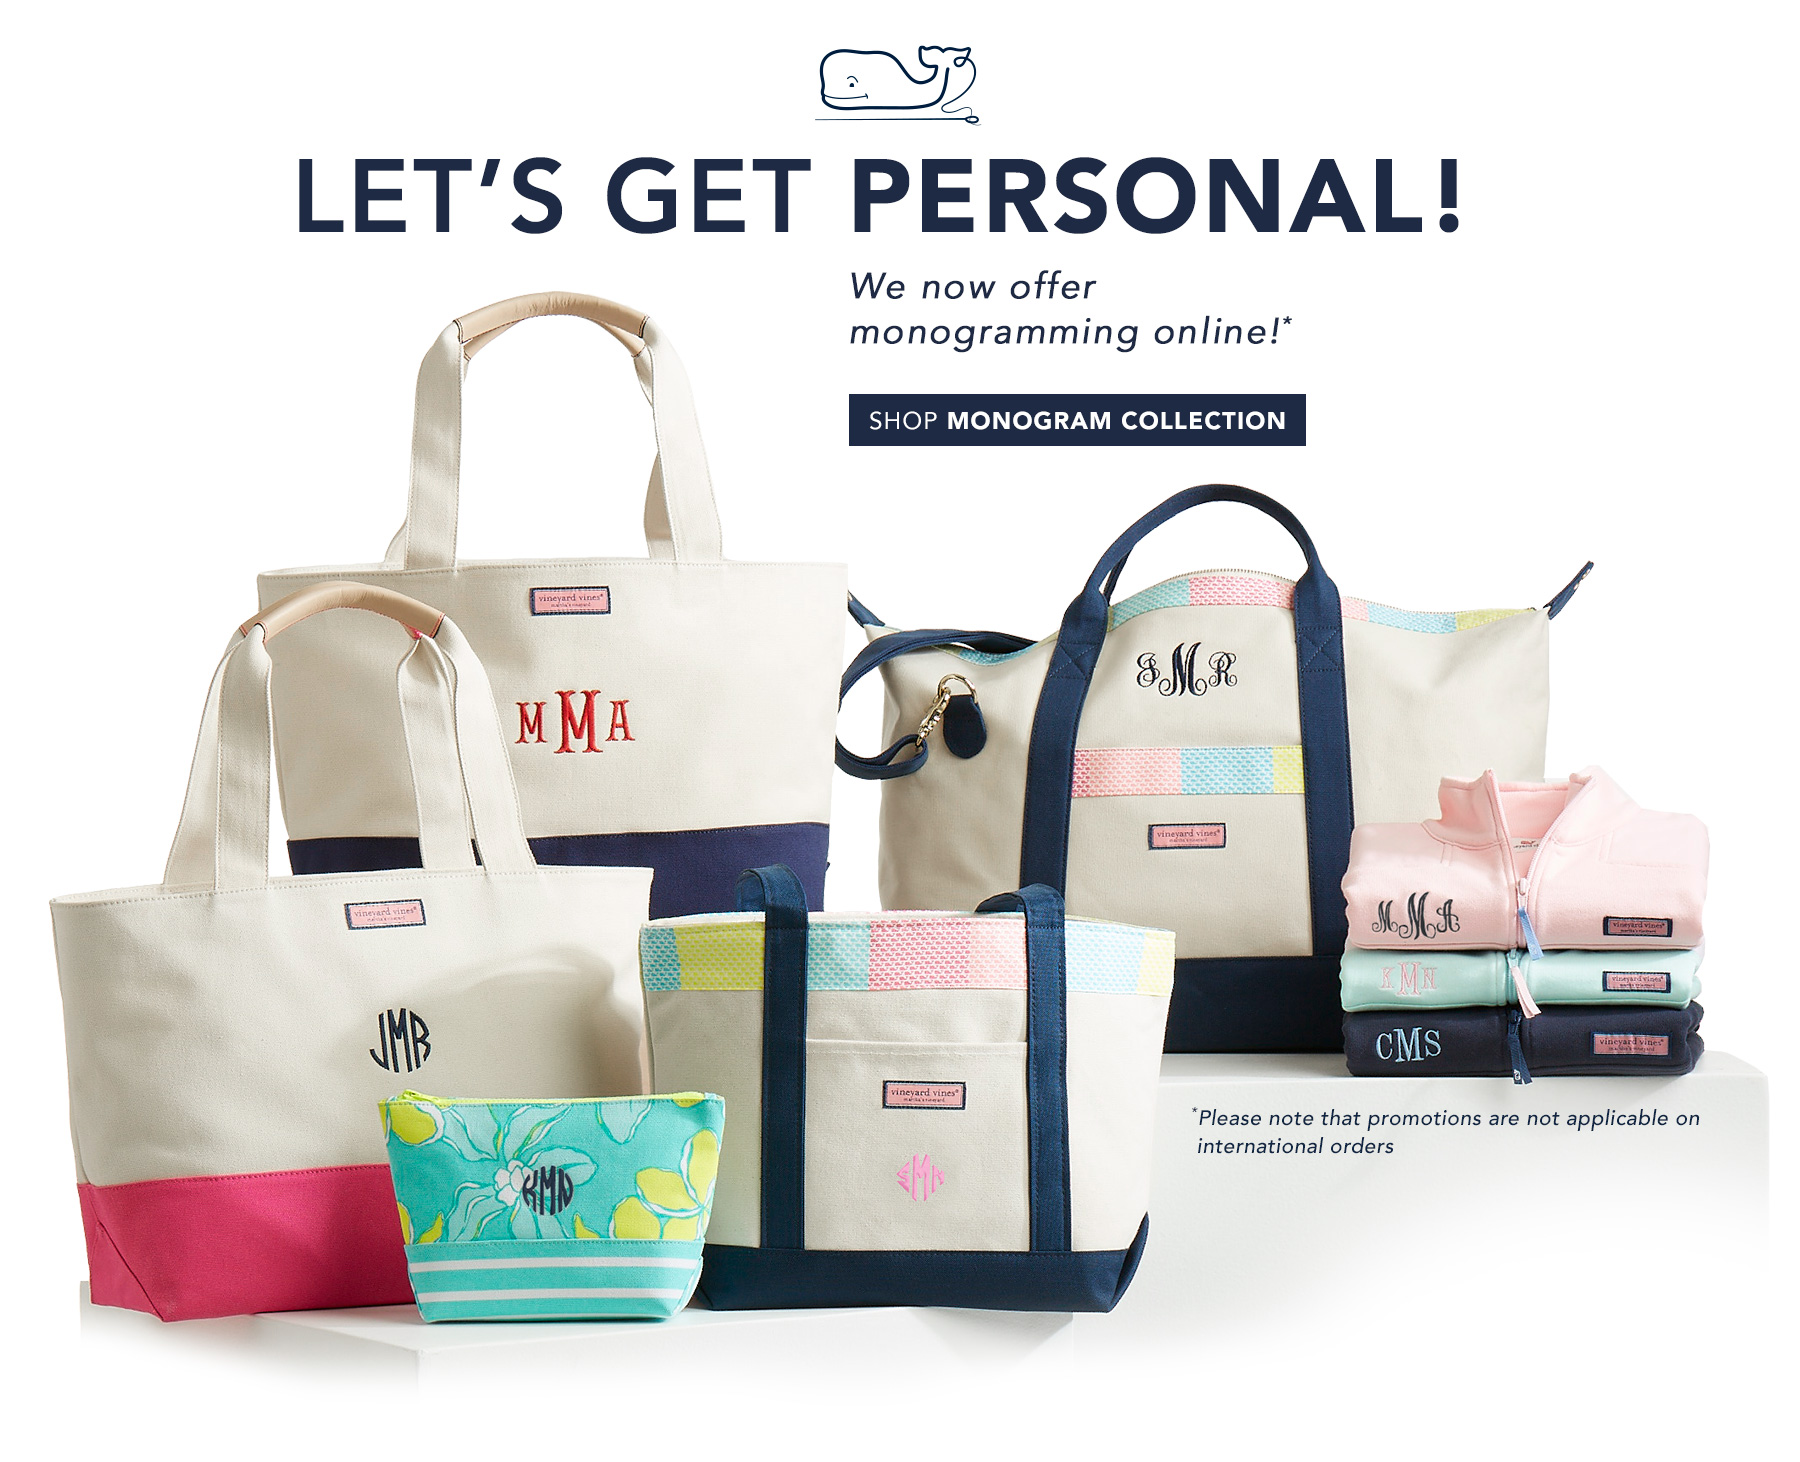 Lets get personal! We now offer monogramming online! Shop Monogram Collection.